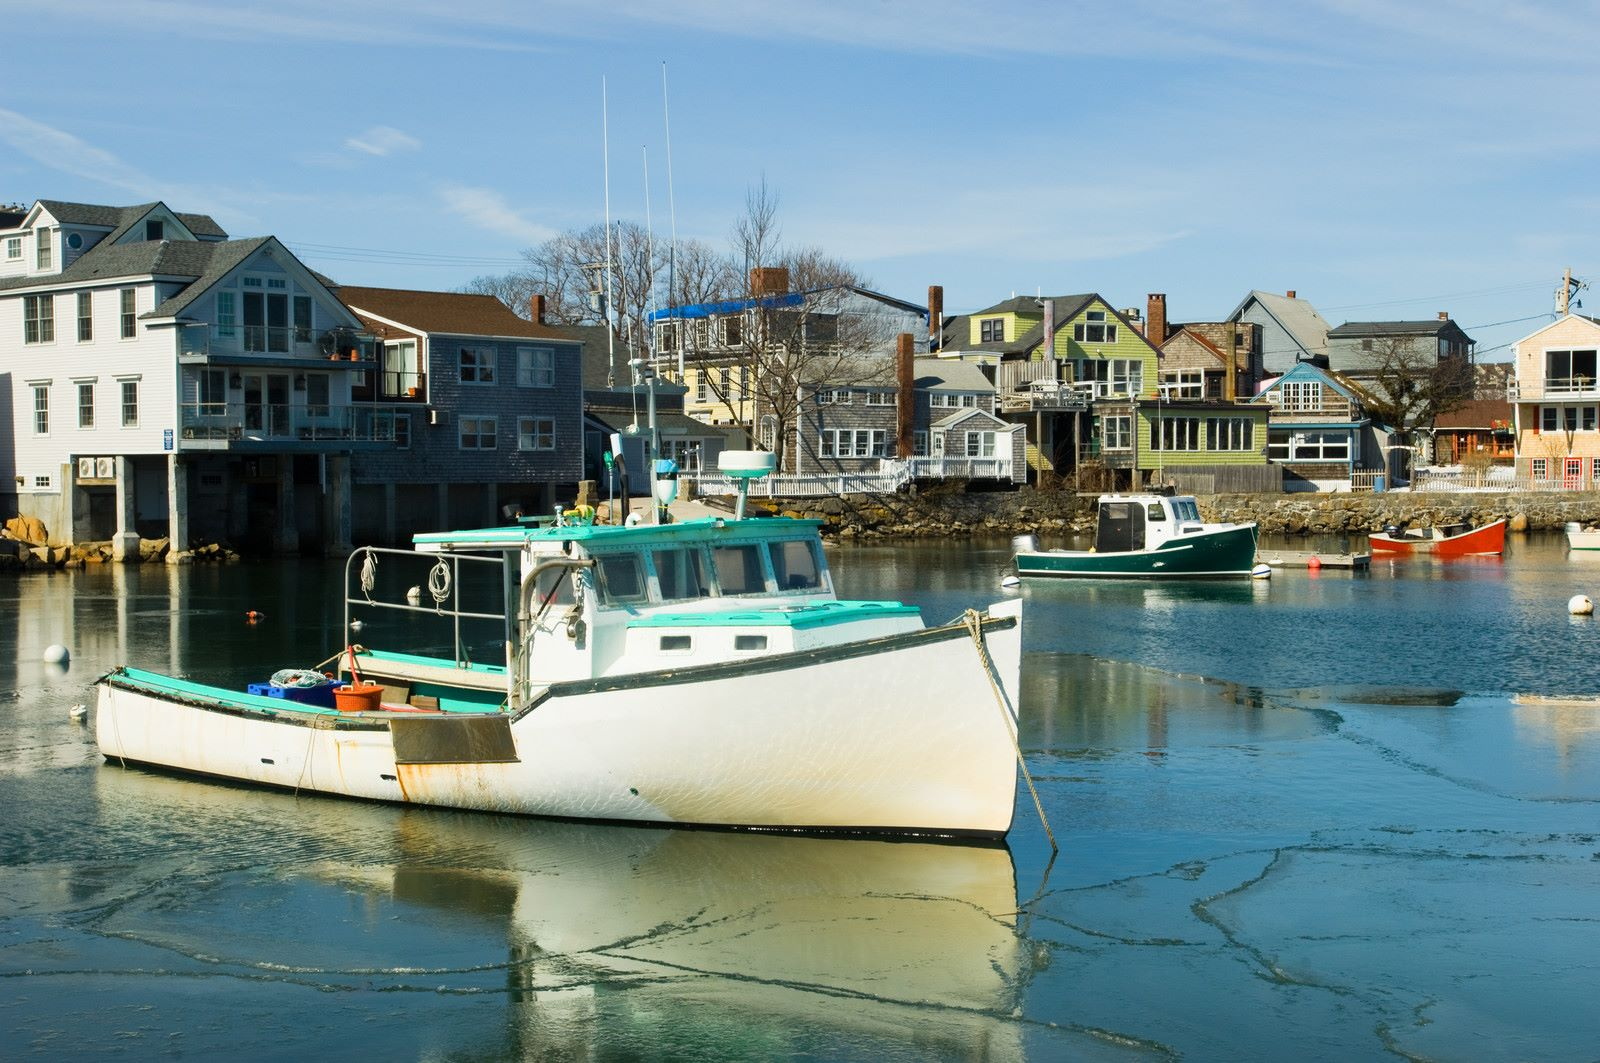 Rockport Massachusetts photo of boats on the water in early spring with blue skies and oceanside homes lining the shore